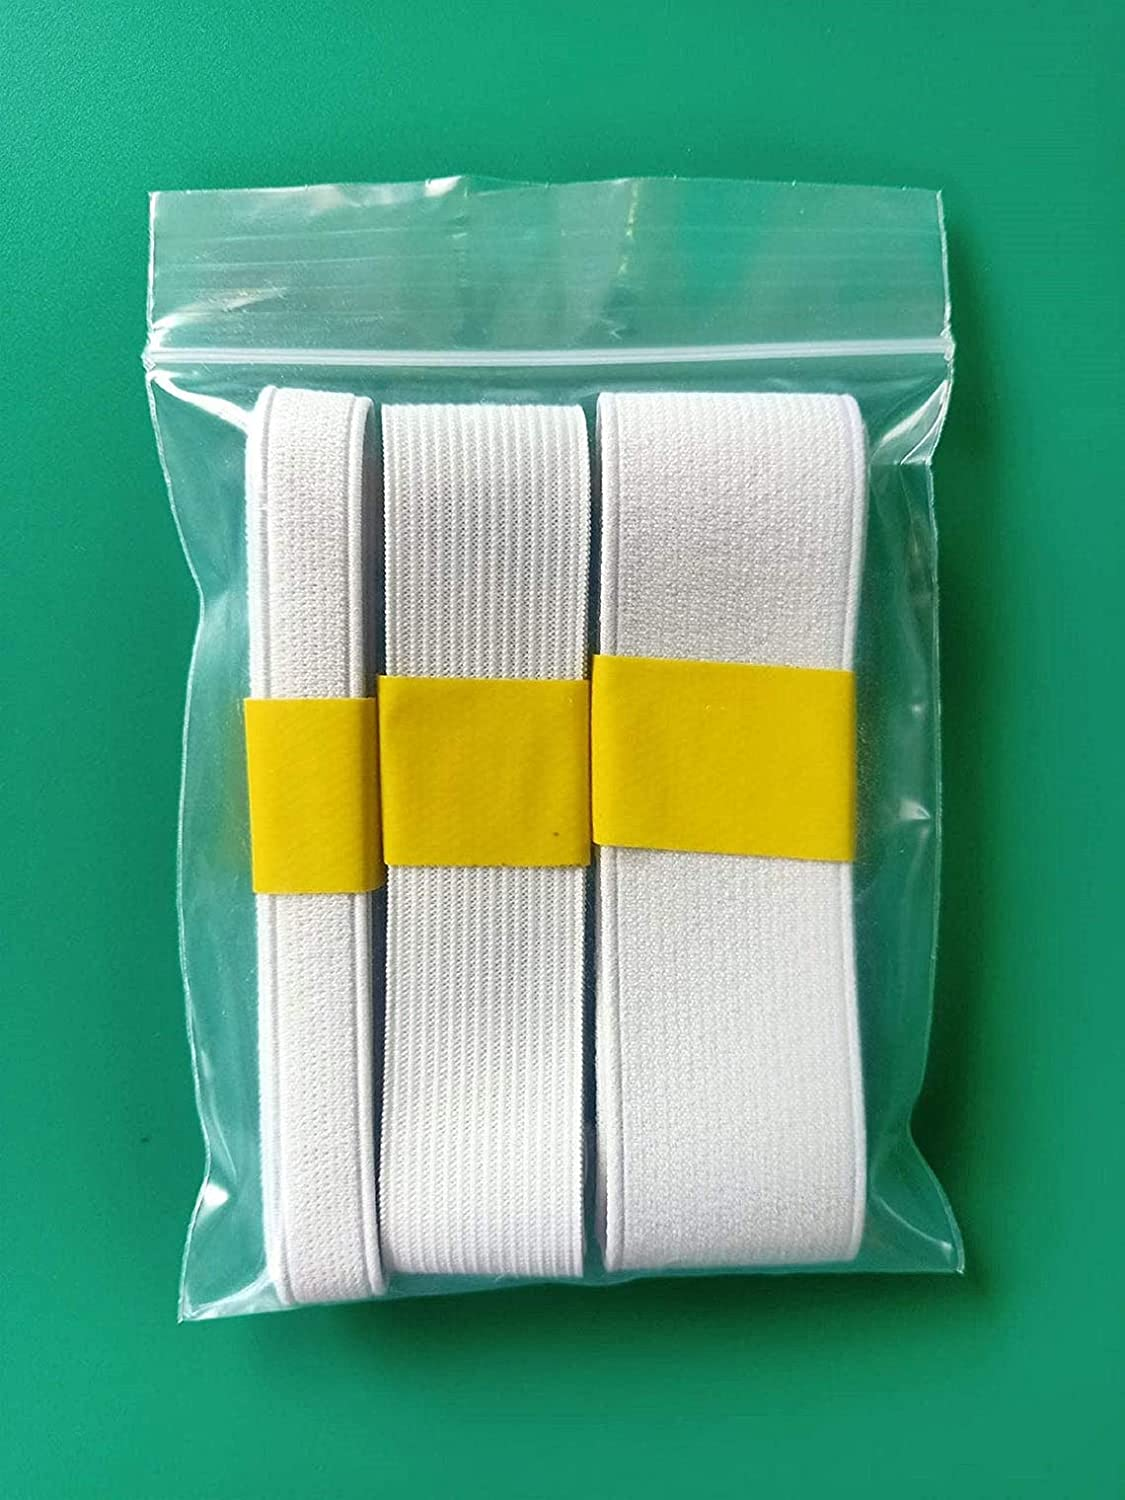 3 sold out Yards Bulk Mix Size 1 2'' Inch 67% OFF of fixed price Flat Ribbon 2